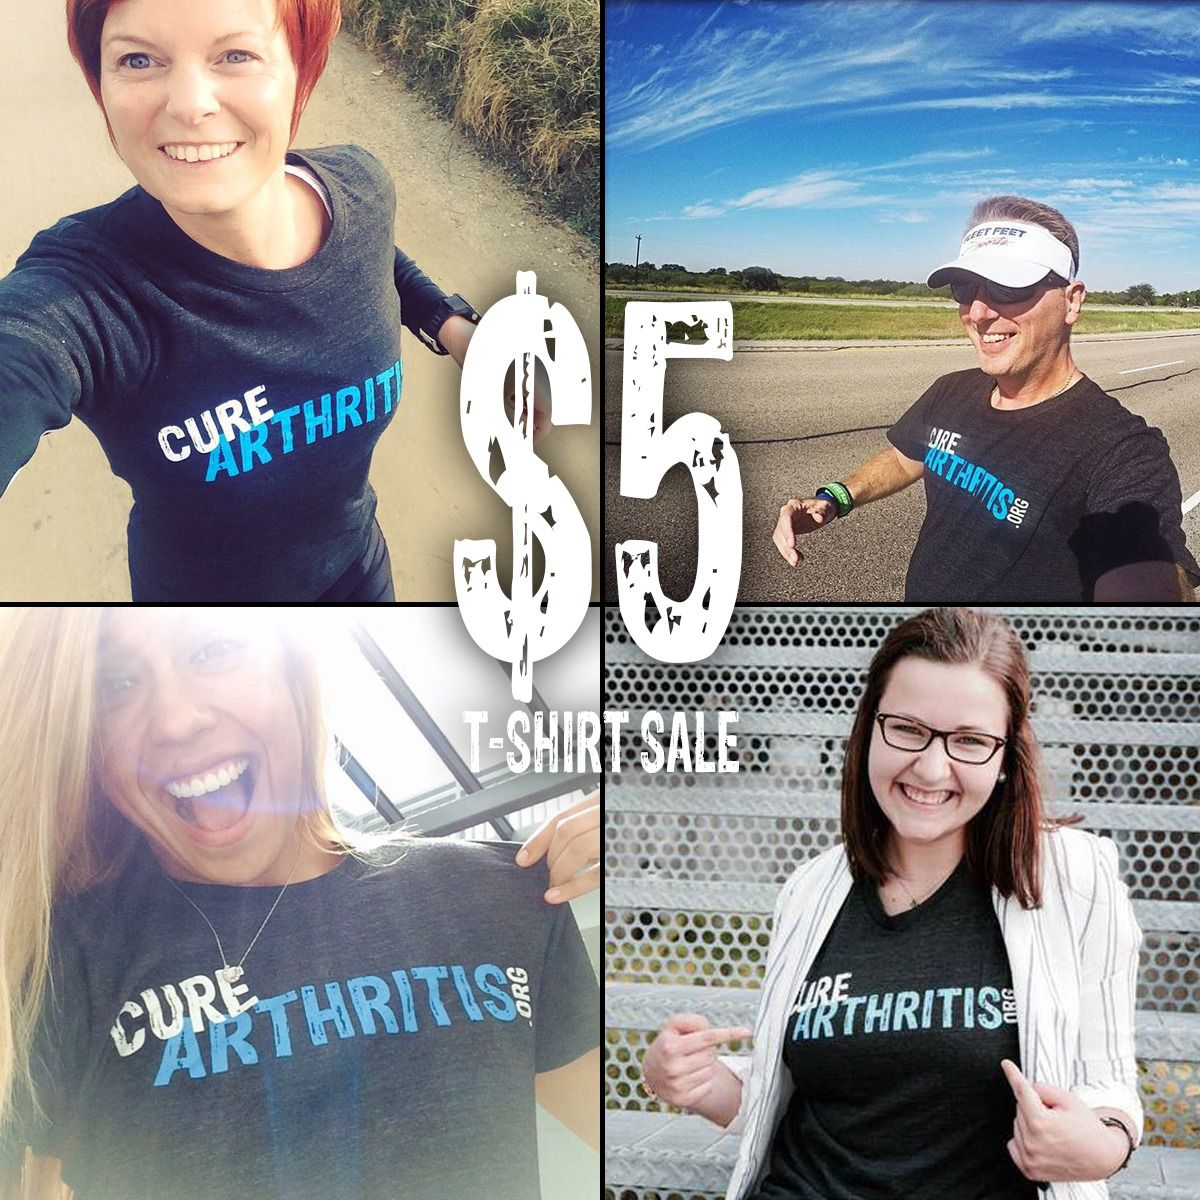 #CureArthritis T-shirts for $5! Next month is Arthritis Awareness Month and we want YOU in a Cure Arthritis T-Shirt! Get yours today for $5 while supplies last and get ready to spread arthritis awareness! Shirts available at CureArthritis.org/t-shirt